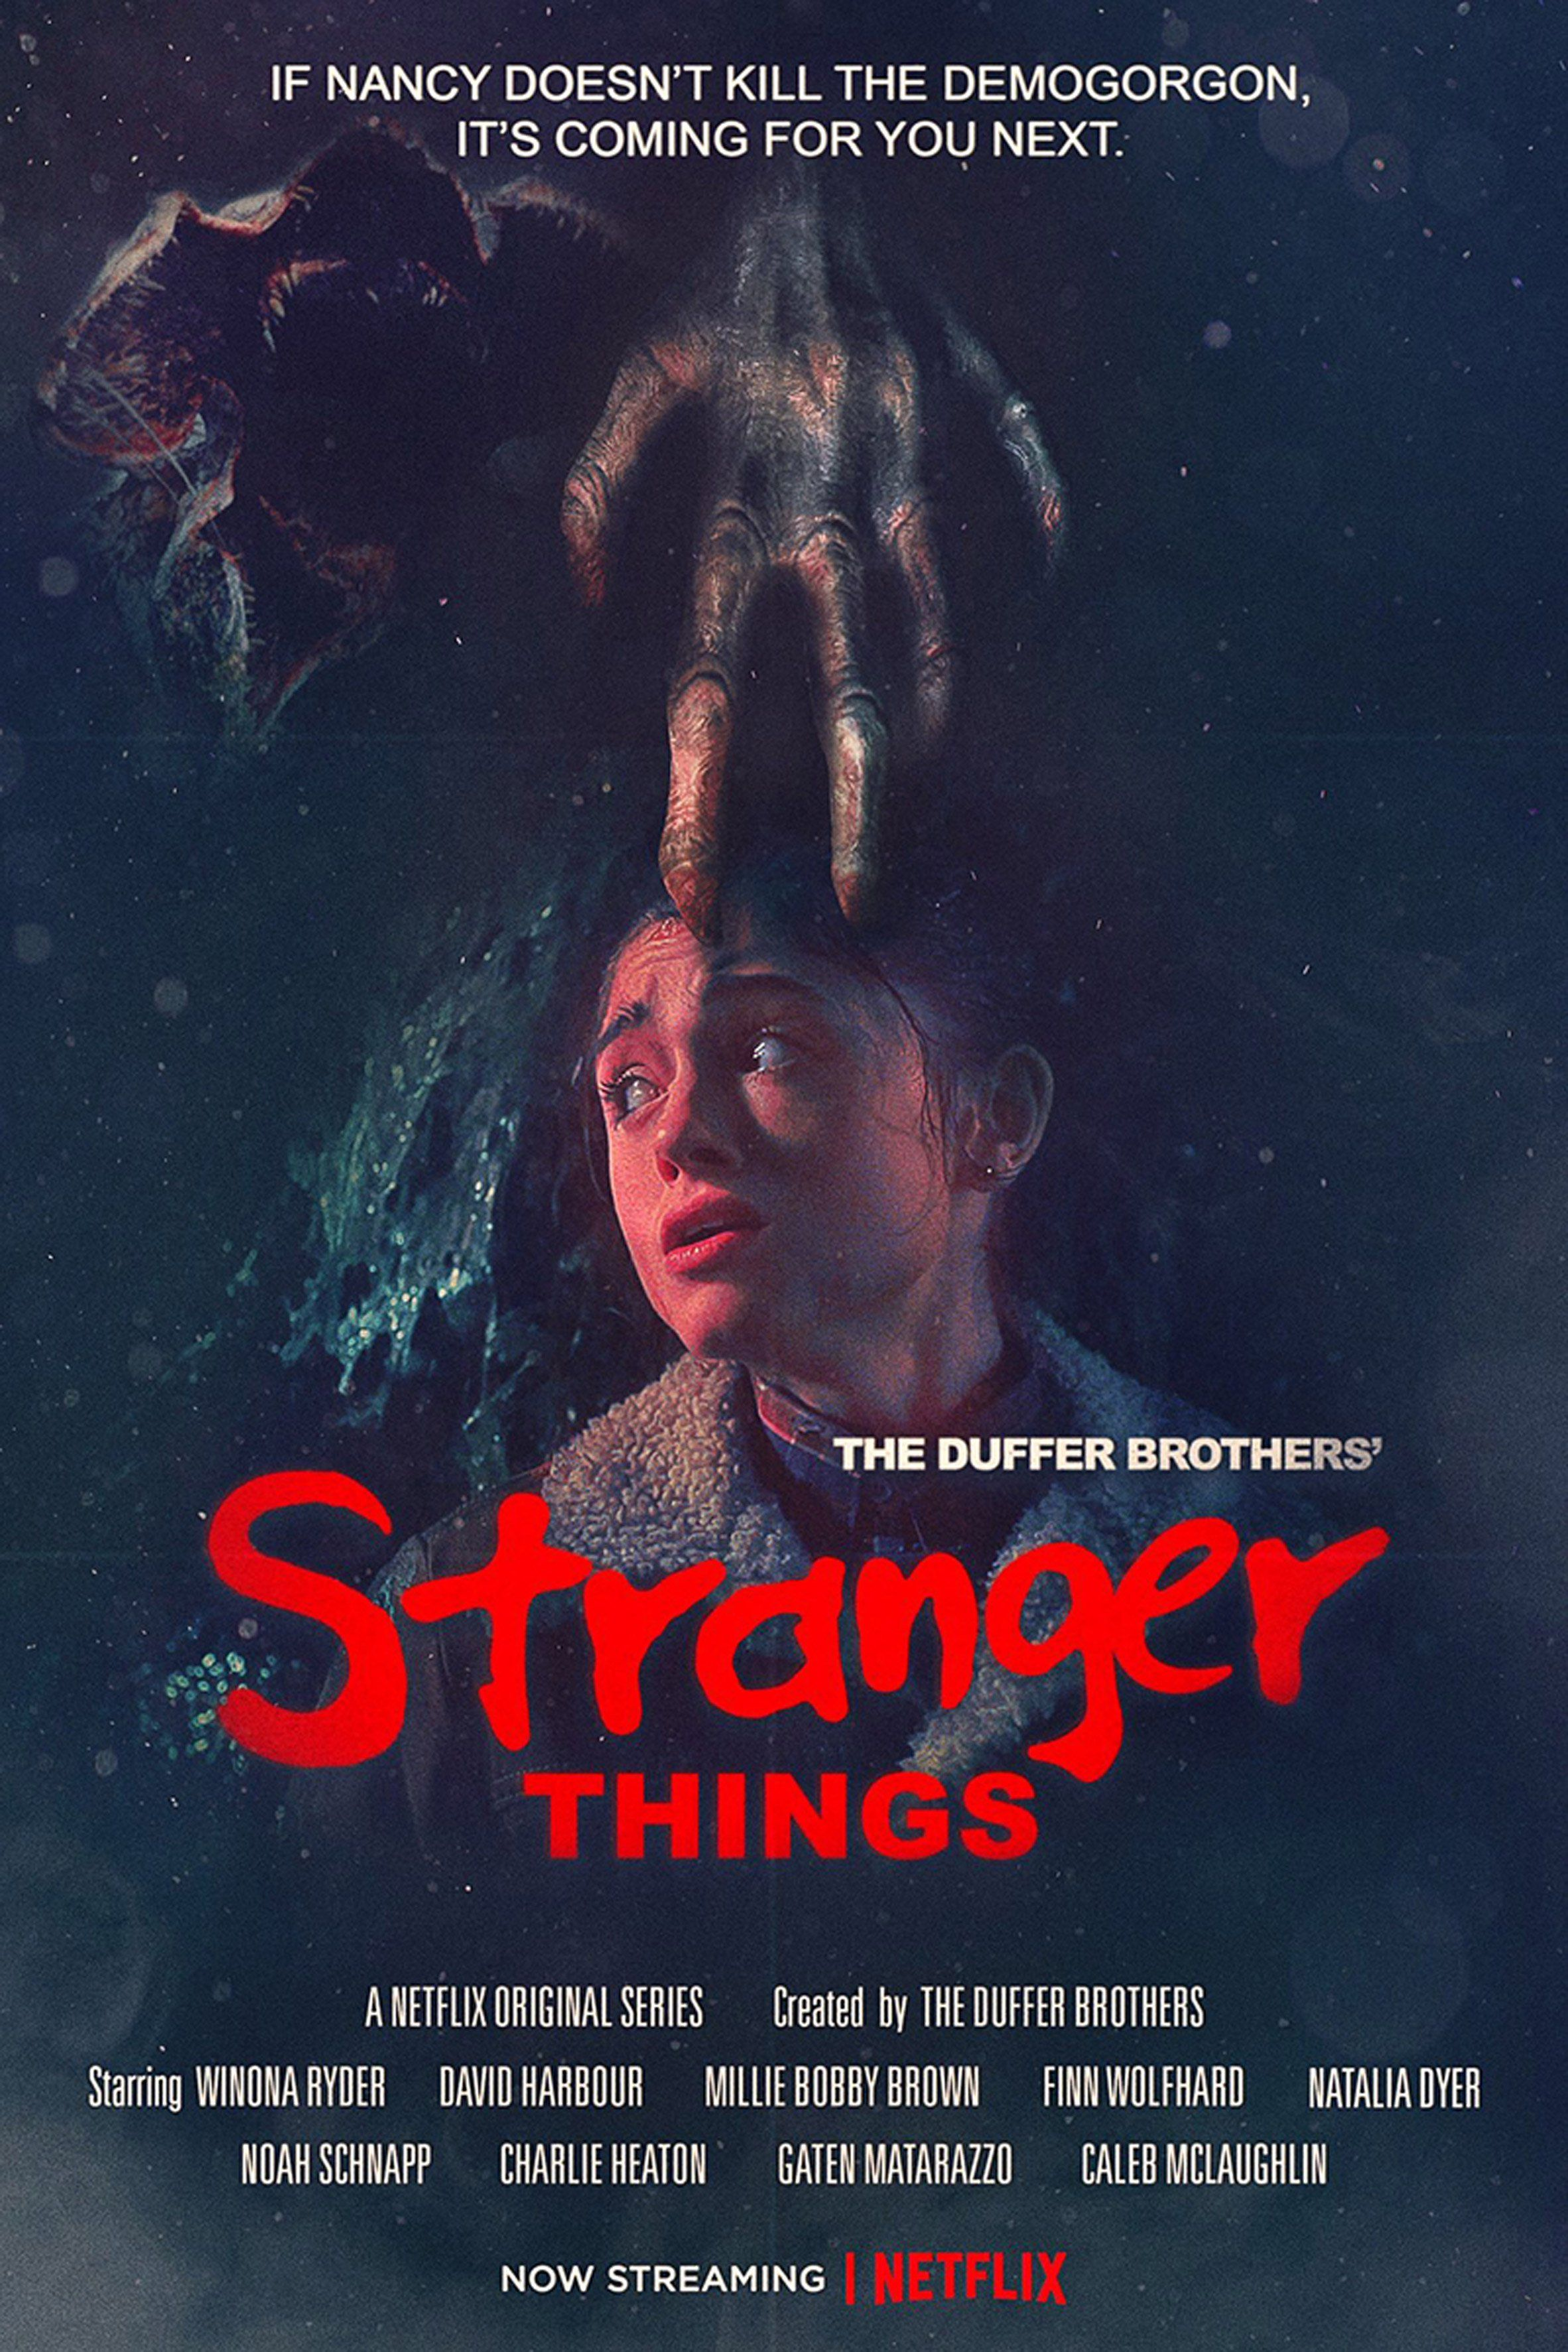 Netflix Pays Tribute To 1980s Sci Fi Movies With Stranger Things